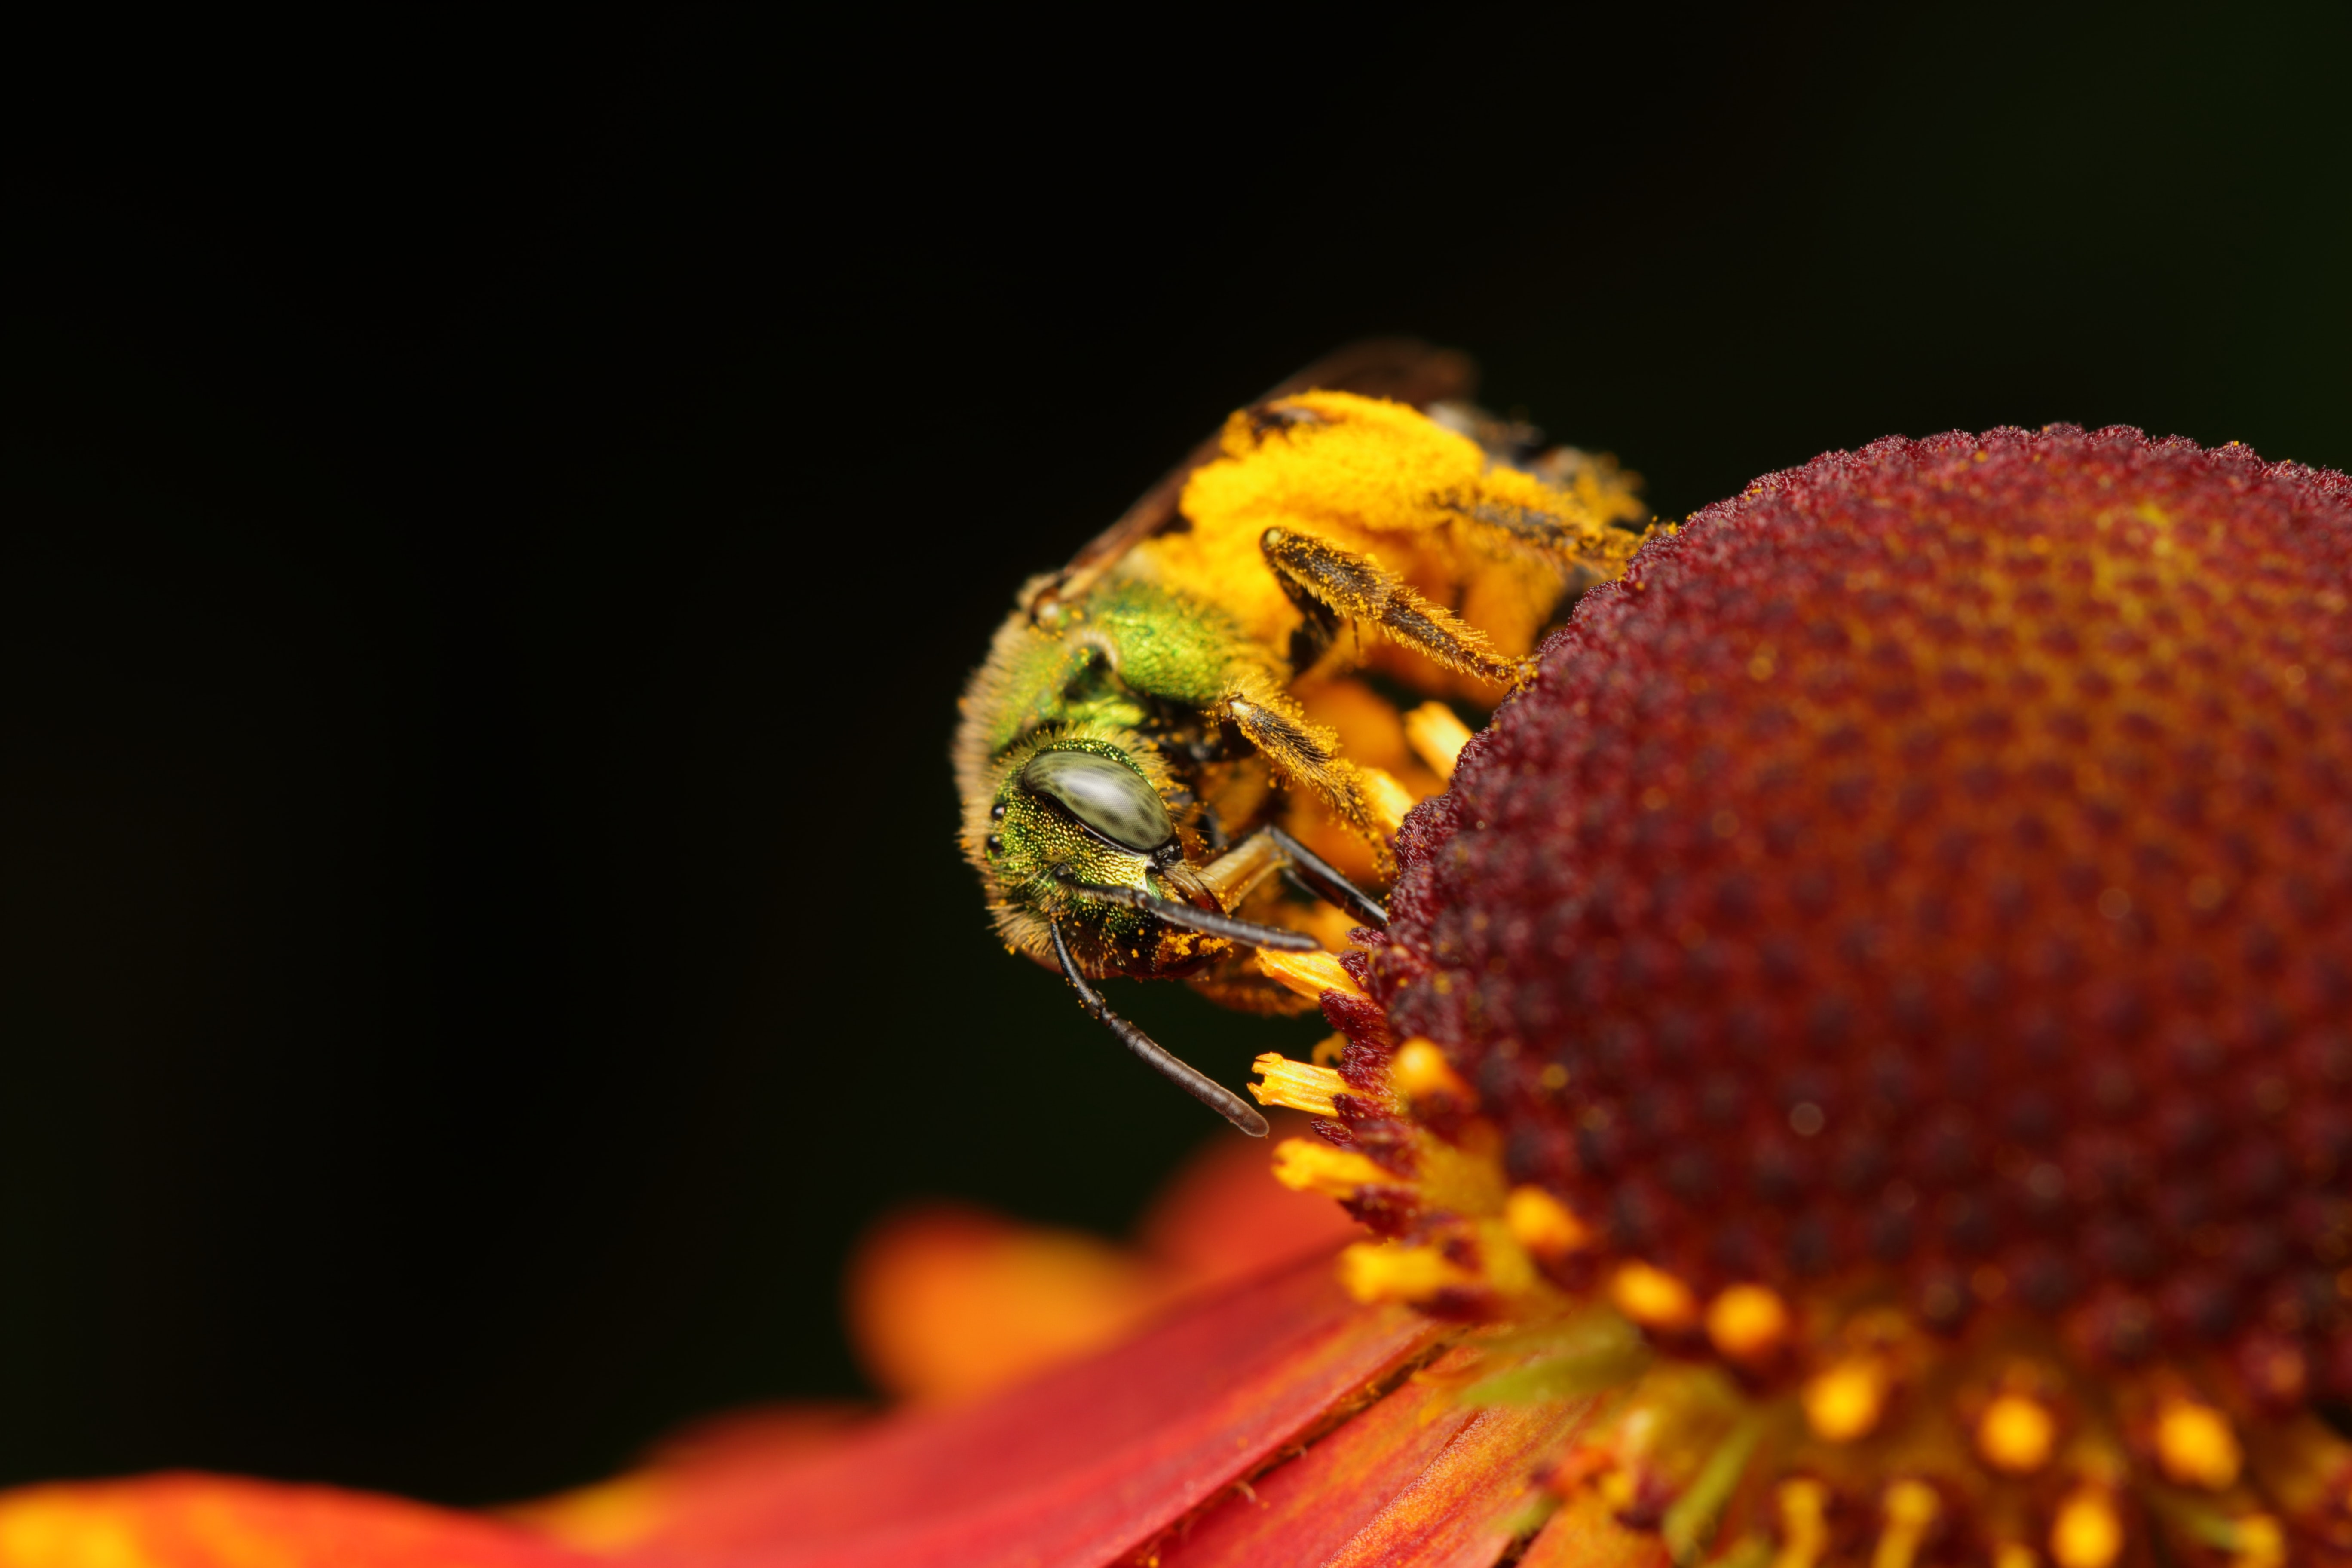 macro photo of a bee covered in pollens on red flower